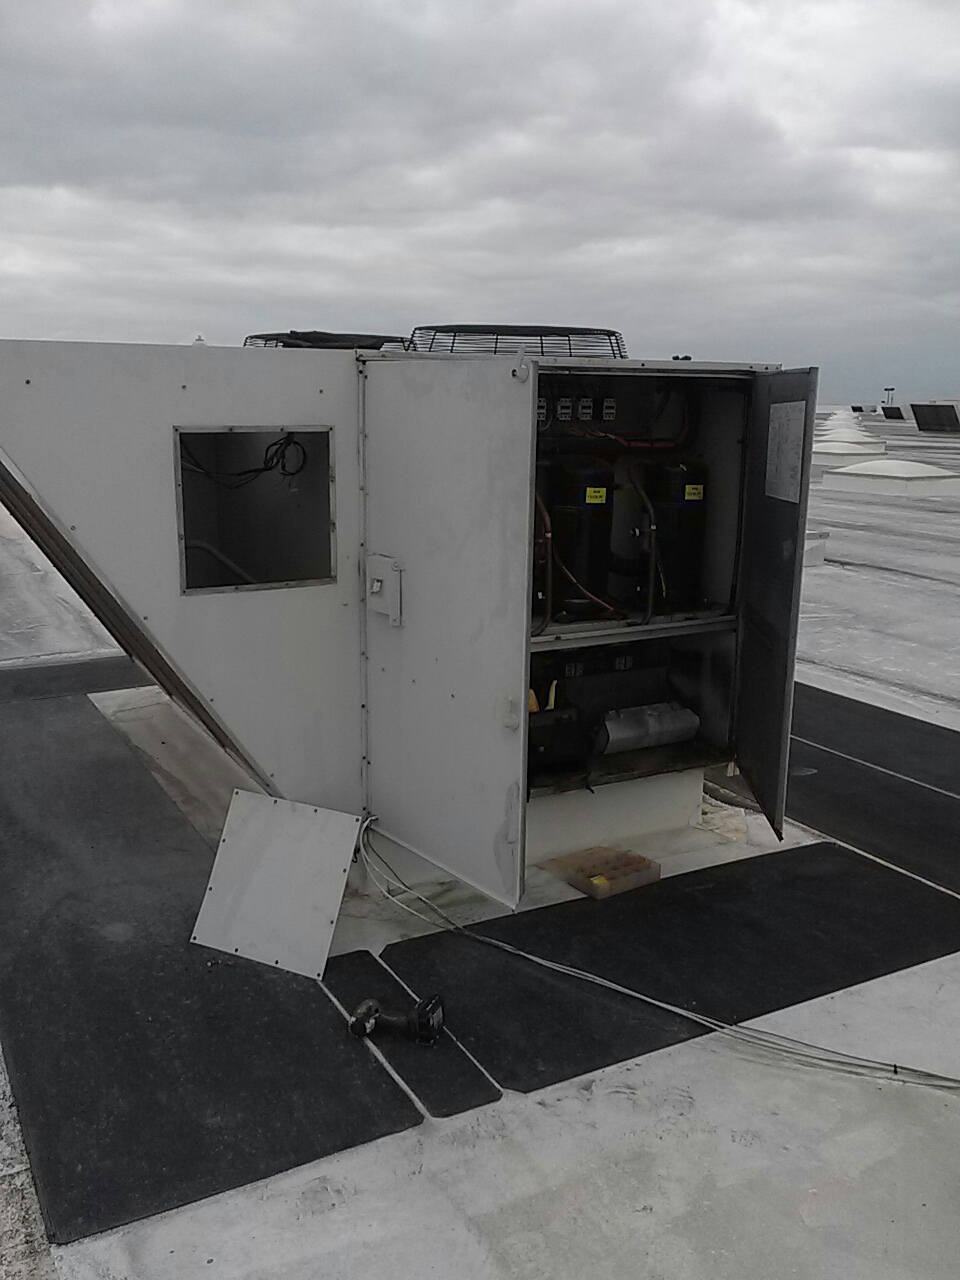 Cocoa, FL - Air conditioning service call and repair on commercial rooftop package unit with a high-voltage short.